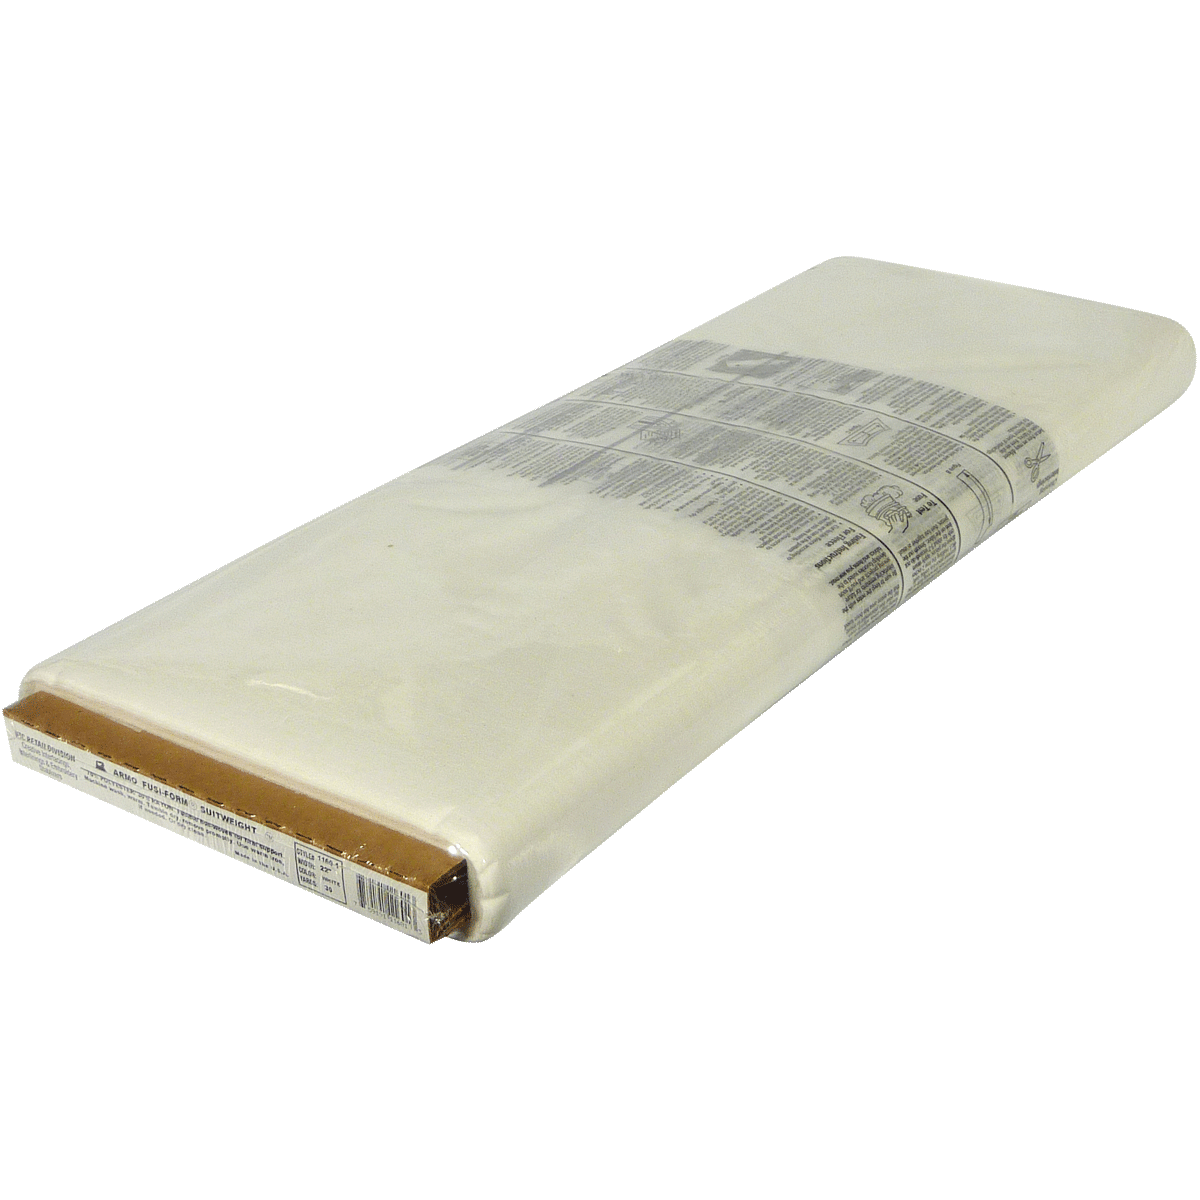 Fusi-Form Suitweight - Fusible non-woven Interfacing - HTC1160-1